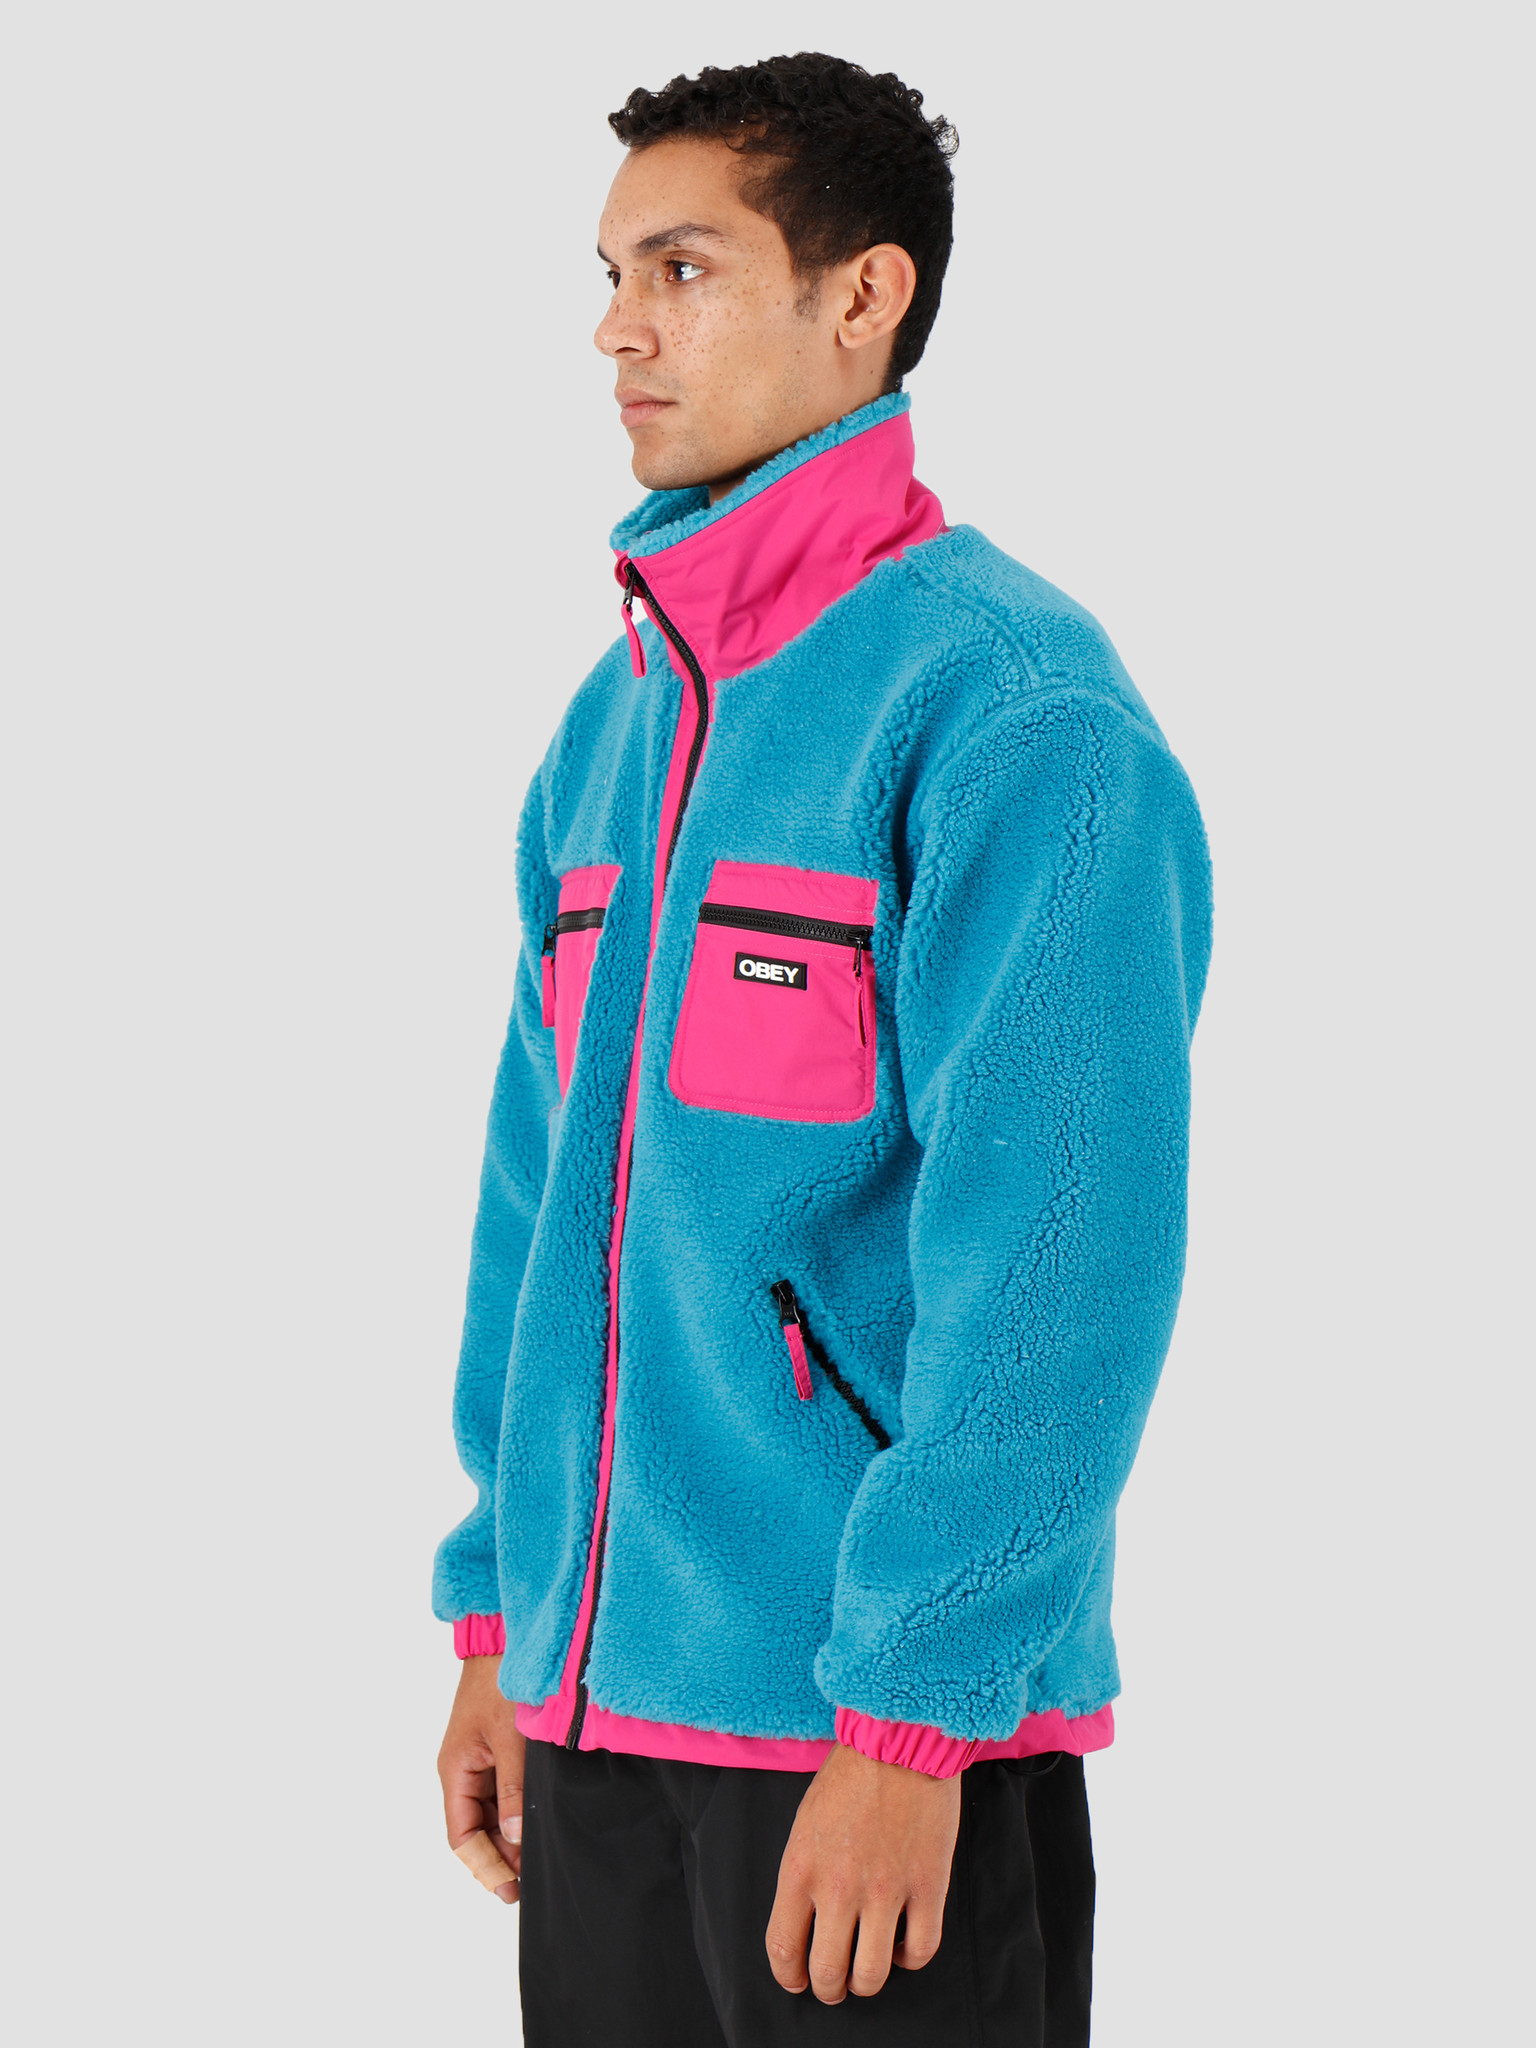 Obey Obey Out There Sherpa Jacket Pure Teal 121800383-PTL